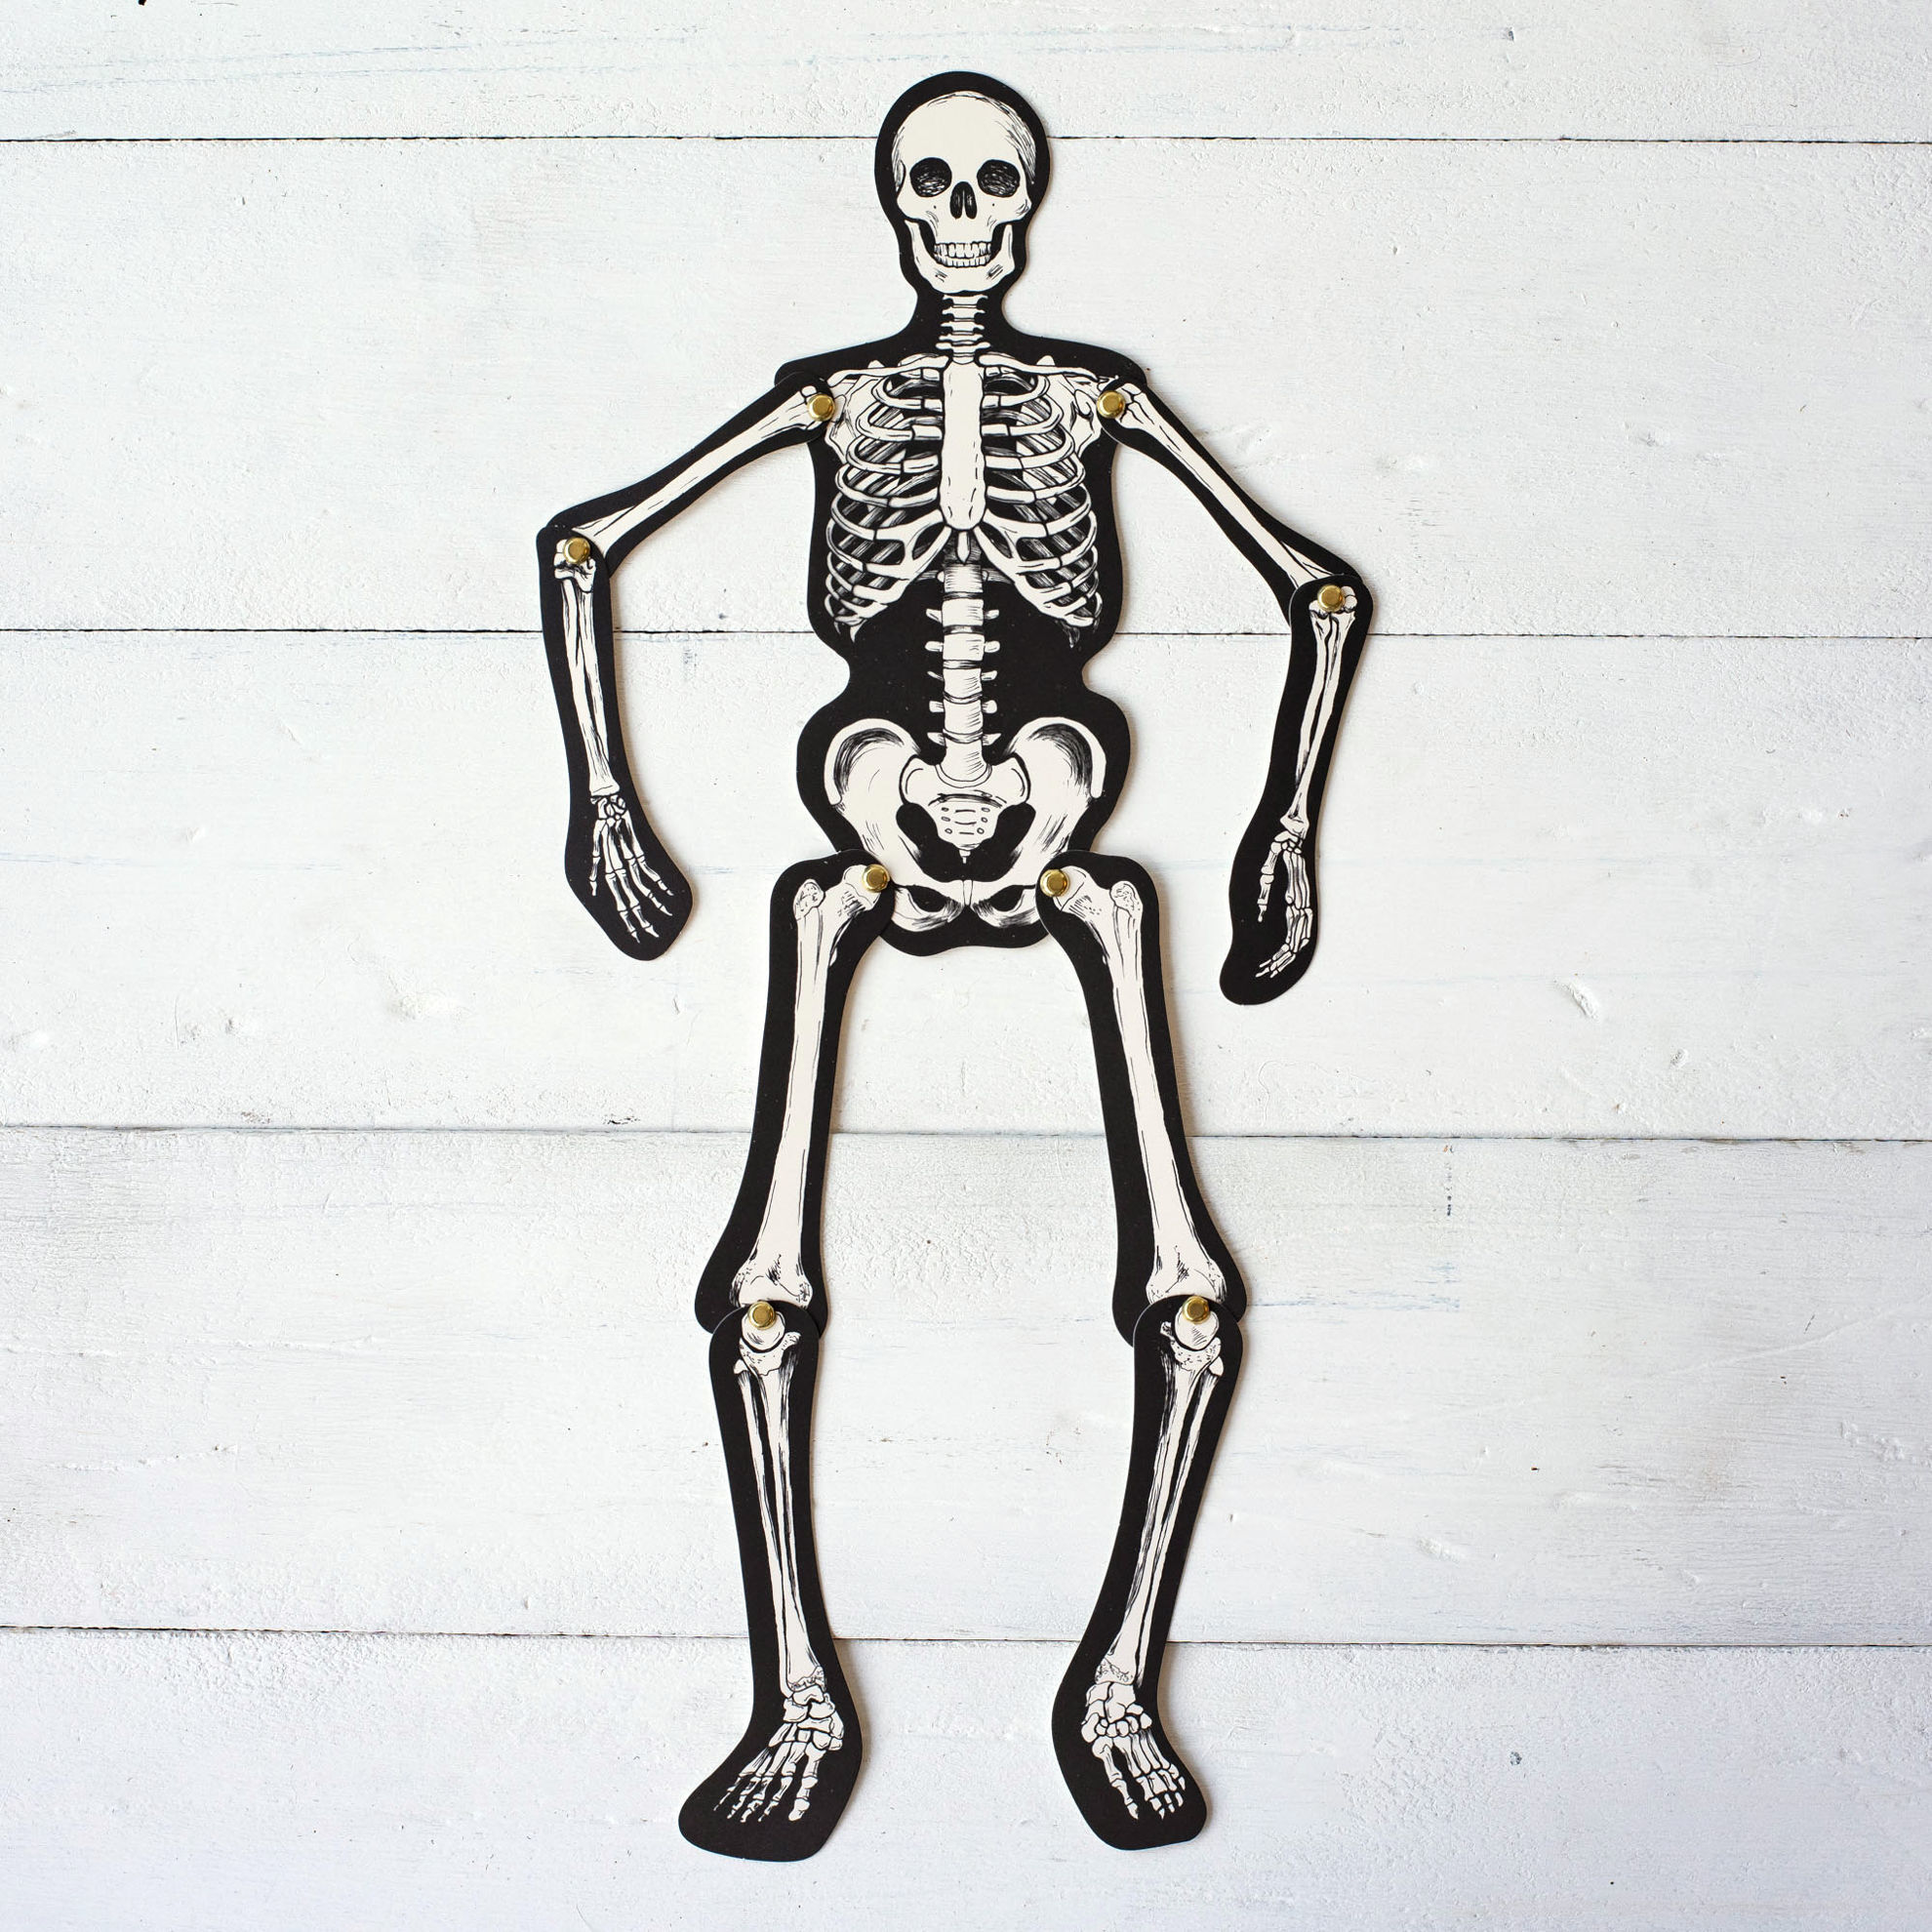 Articulated Skeleton Decorative Accent by Hester & Cook